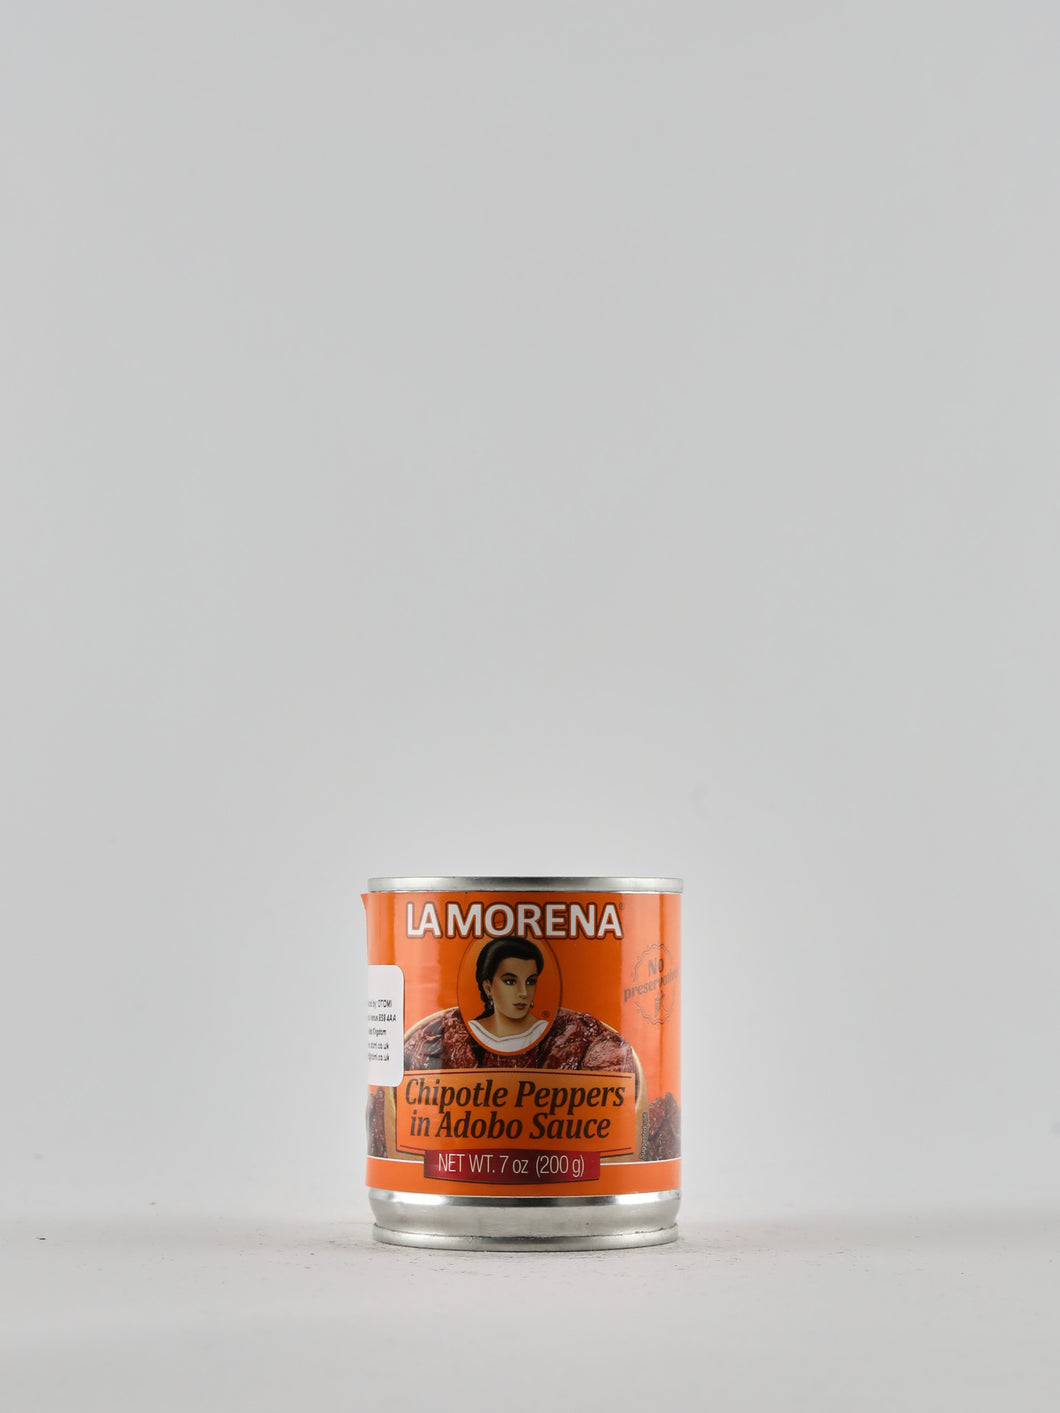 La Morena, Chipotle Peppers in Adobo